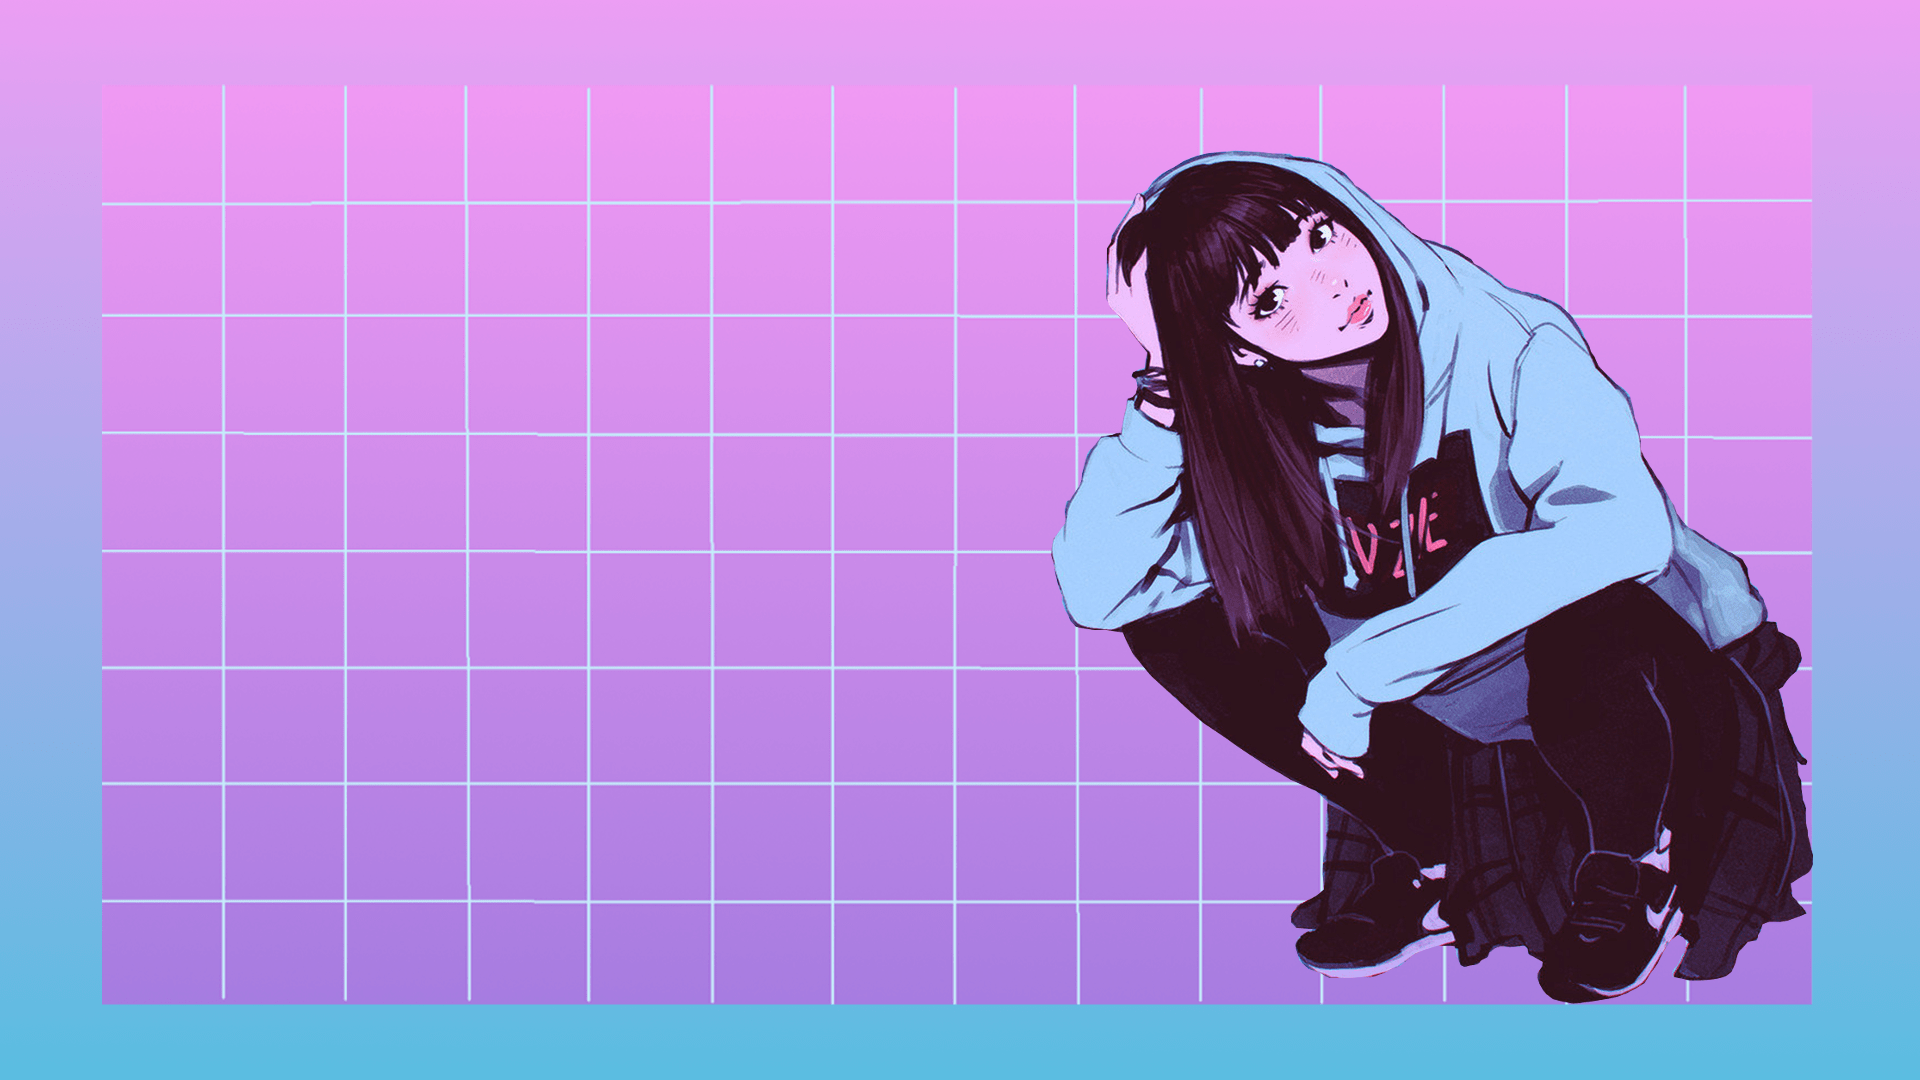 Black anime aesthetic wallpaper laptop are a topic that is being searched for and appreciated by netizens these days. Aesthetic HD Laptop Anime Wallpapers - Wallpaper Cave